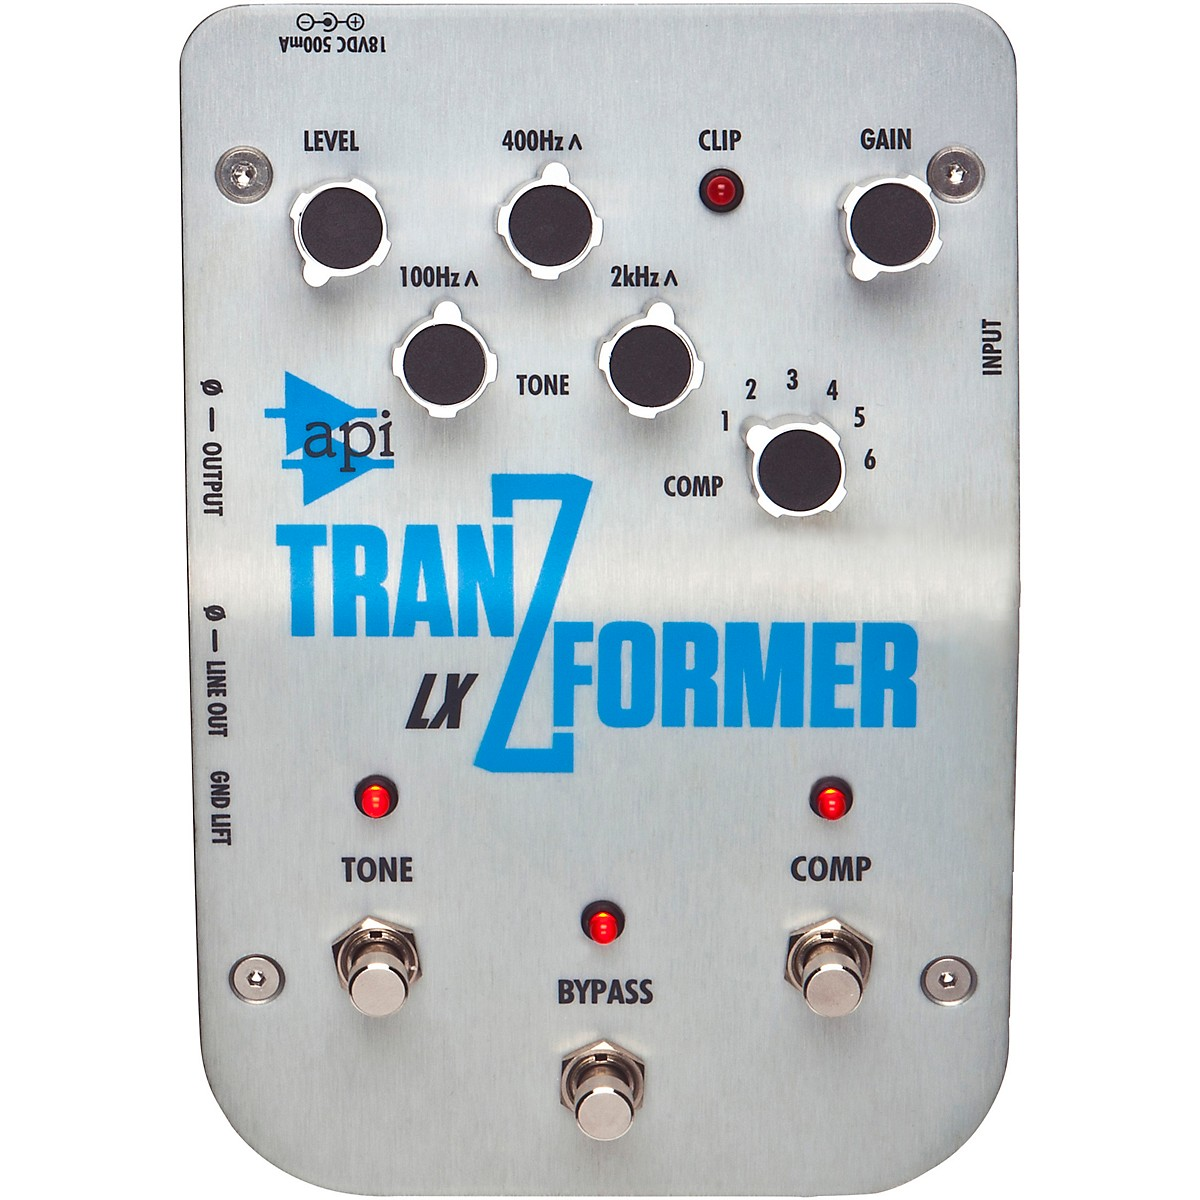 API TranZformer LX Multifunction Bass Effects Pedal